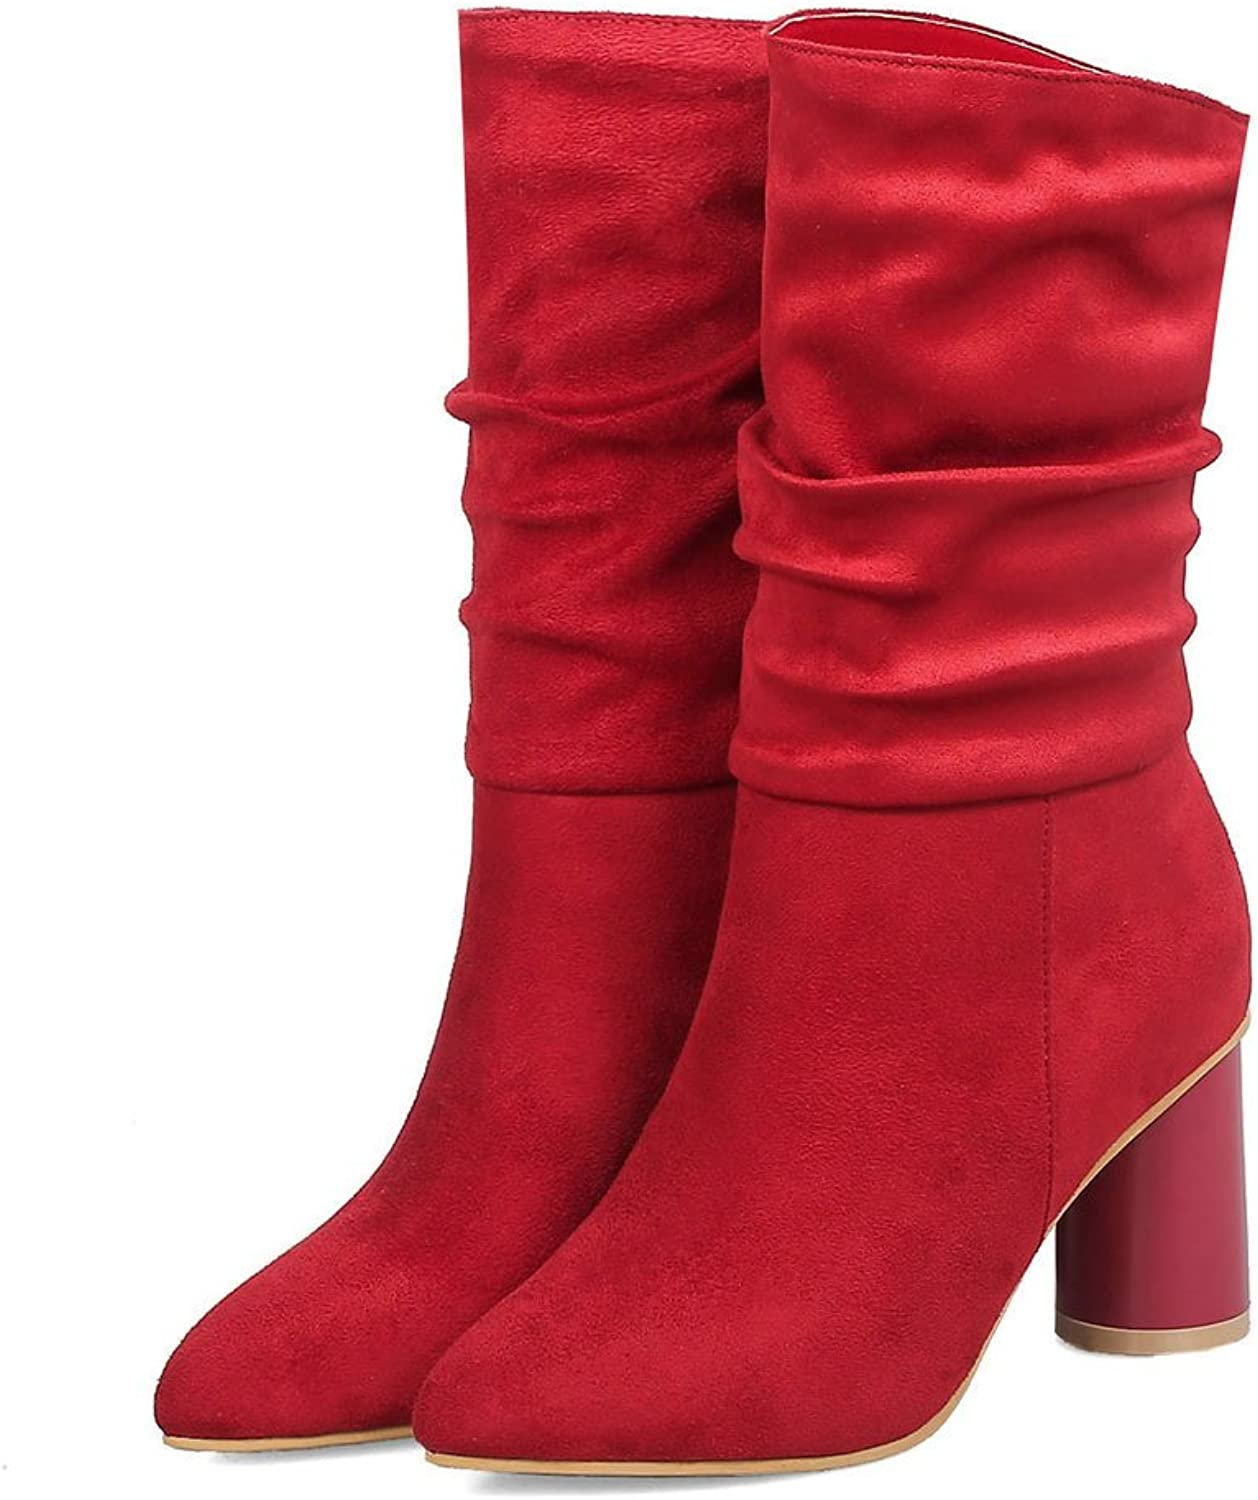 AnMengXinLing Fashion Women Mid Calf Boots Suede Block High Heel Pointed Toe Trendy Fold Stretchy Slip On Dress Boots